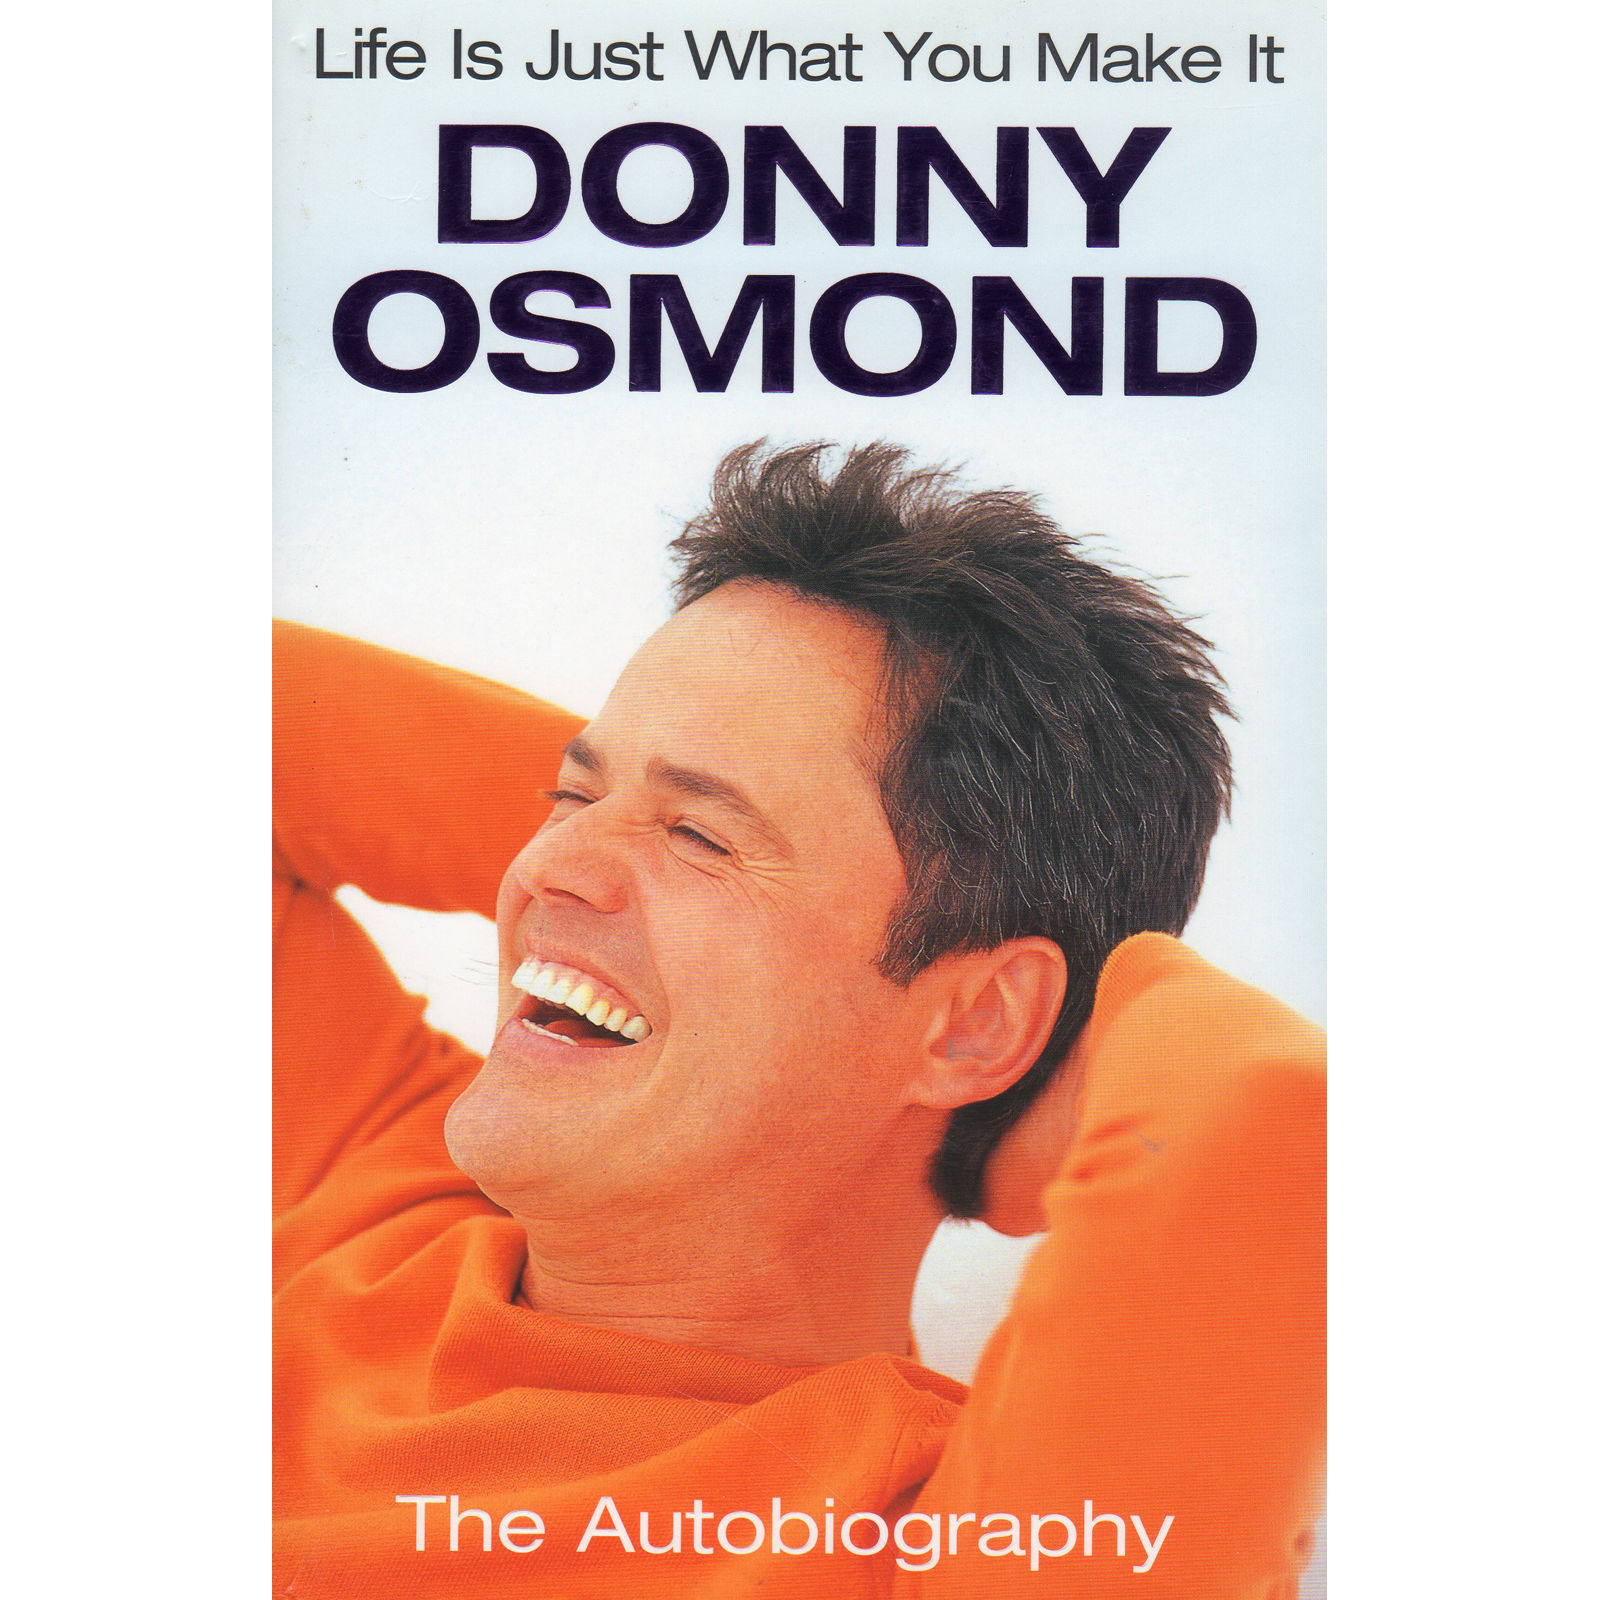 Donny osmond 2018